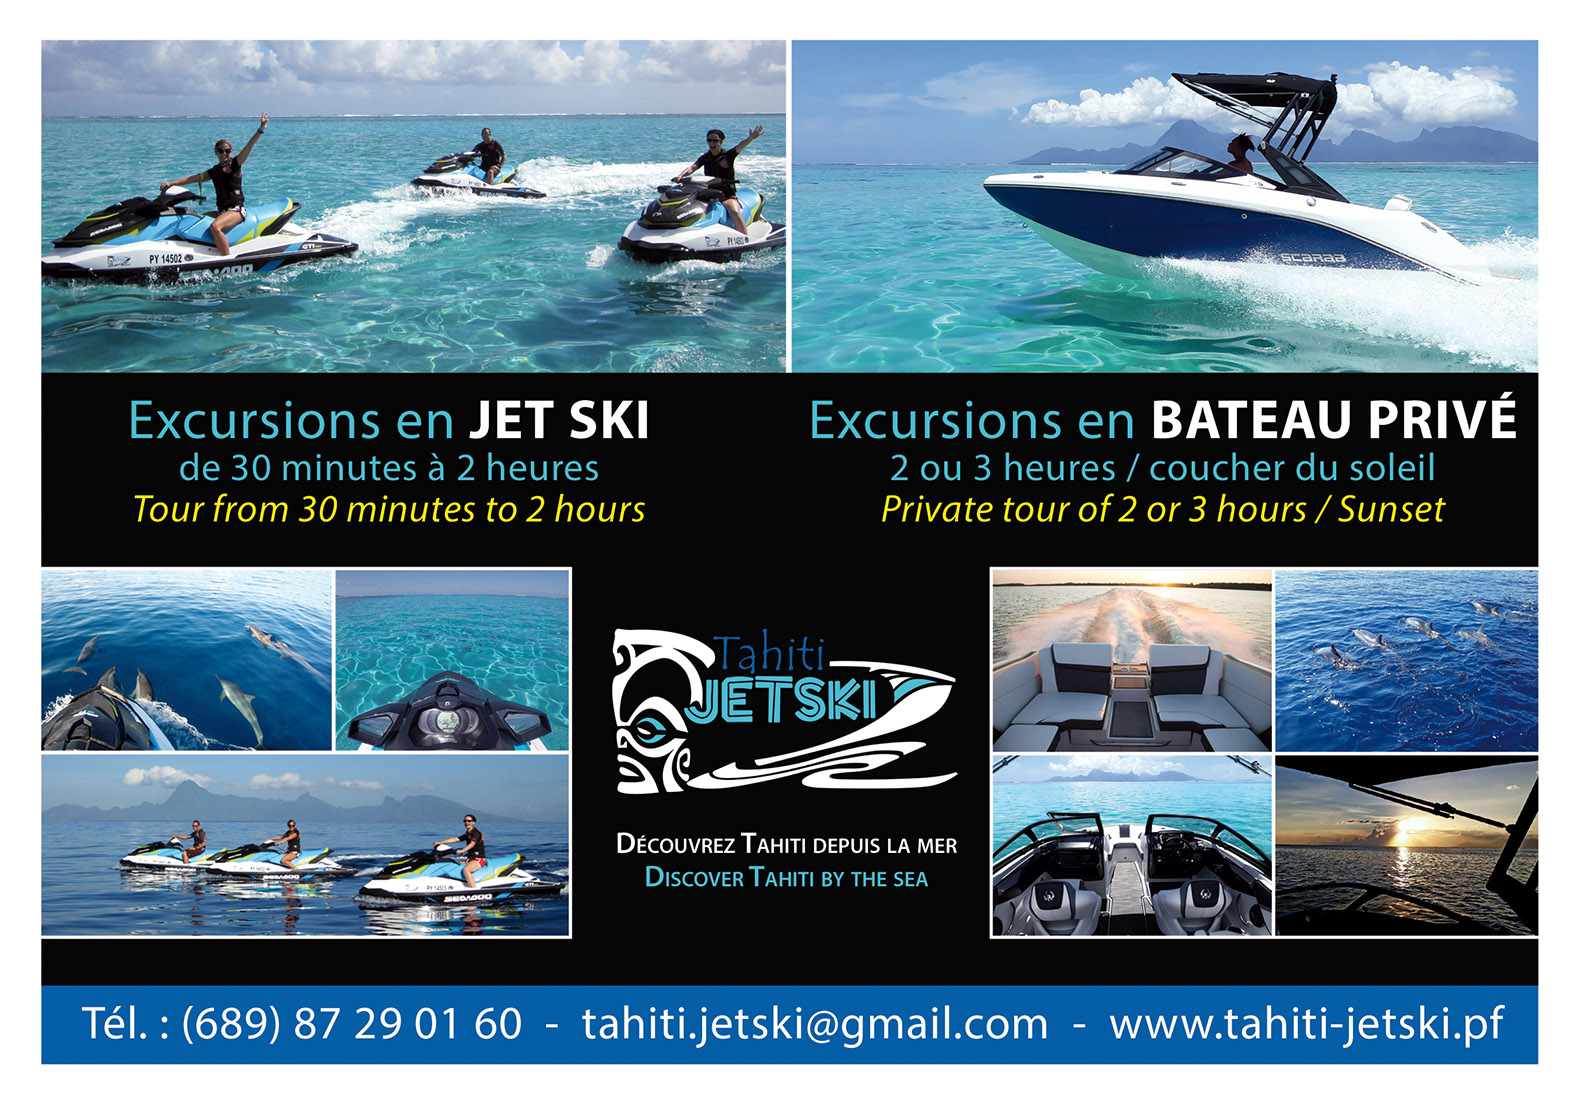 https://tahititourisme.it/wp-content/uploads/2017/08/Tahiti-Jet-Ski-190x130-sept-2.jpg